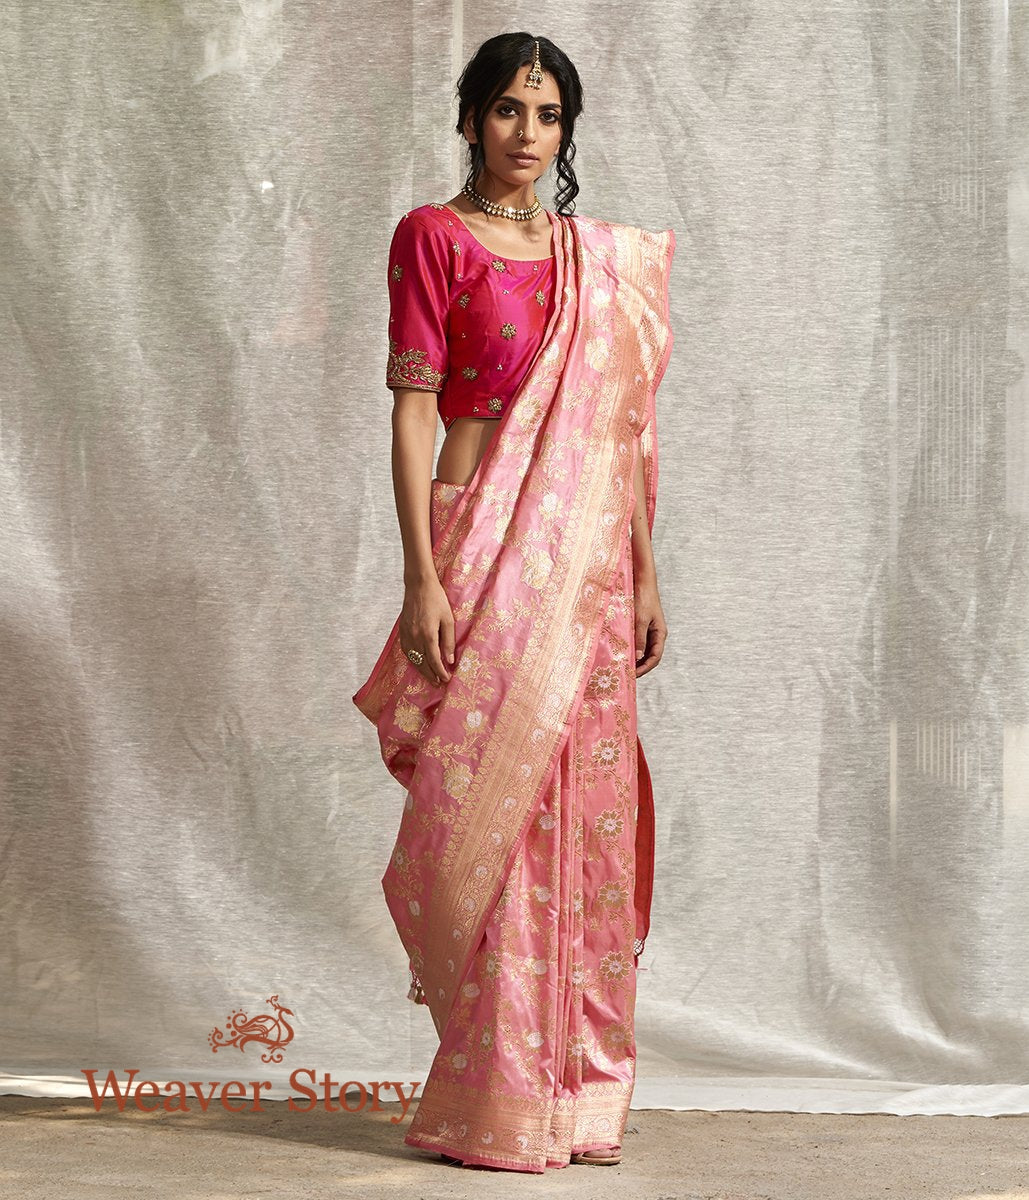 Handwoven Rose Pink Banarasi Jangla Saree with Meenakari